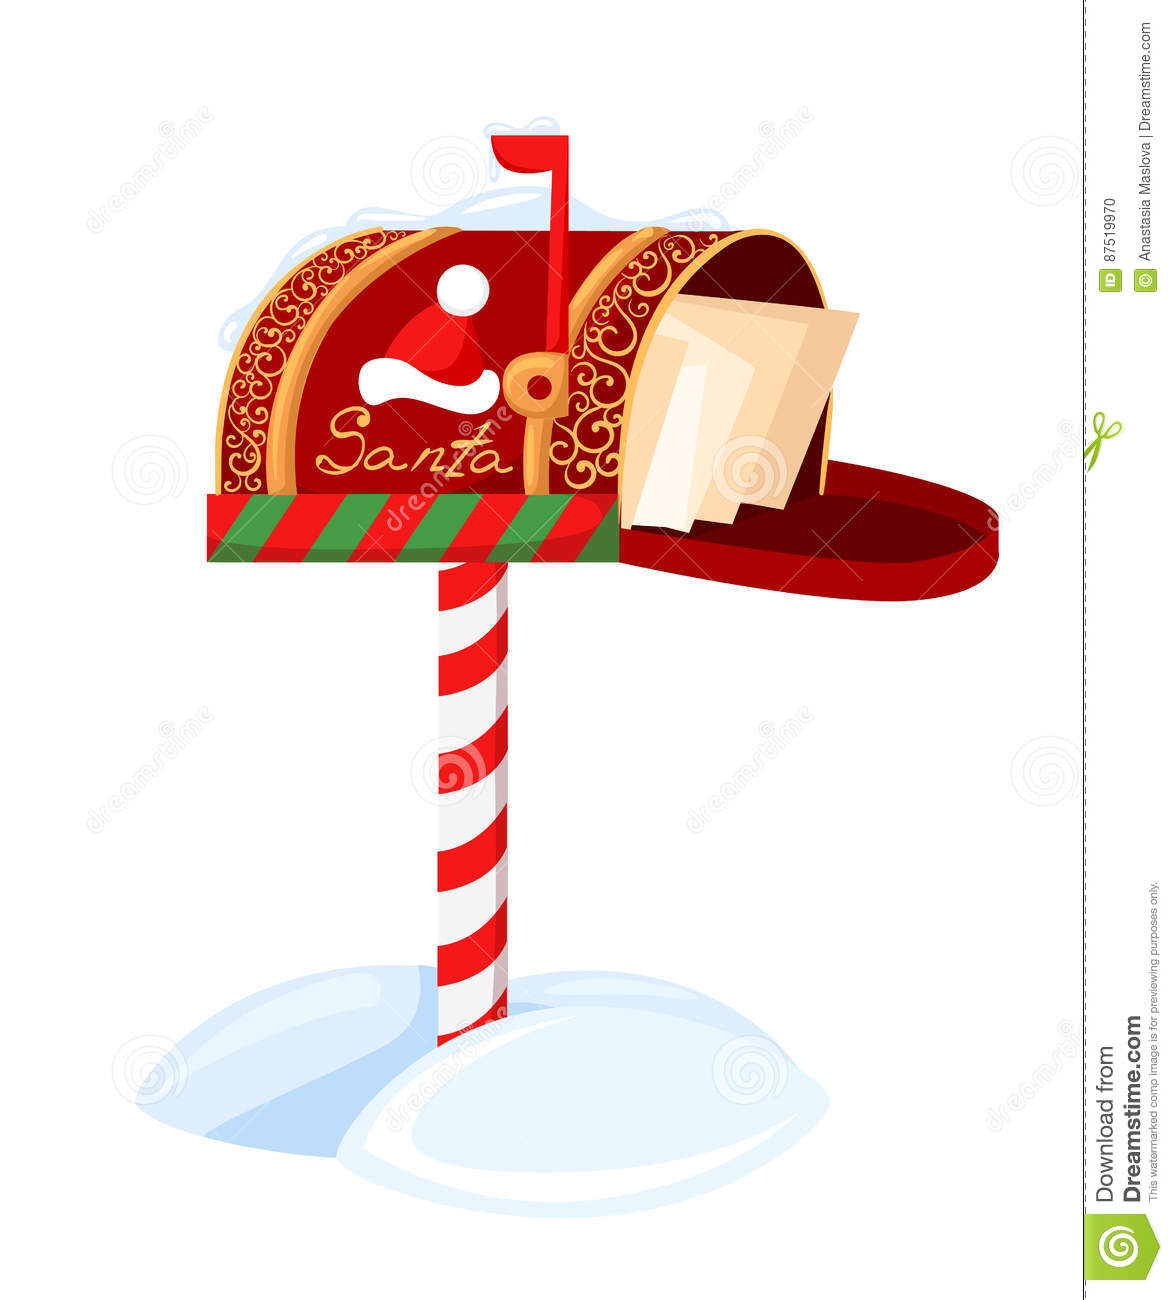 santa s mailbox vector illustration of a letter for santa claus merry christmas and happy new